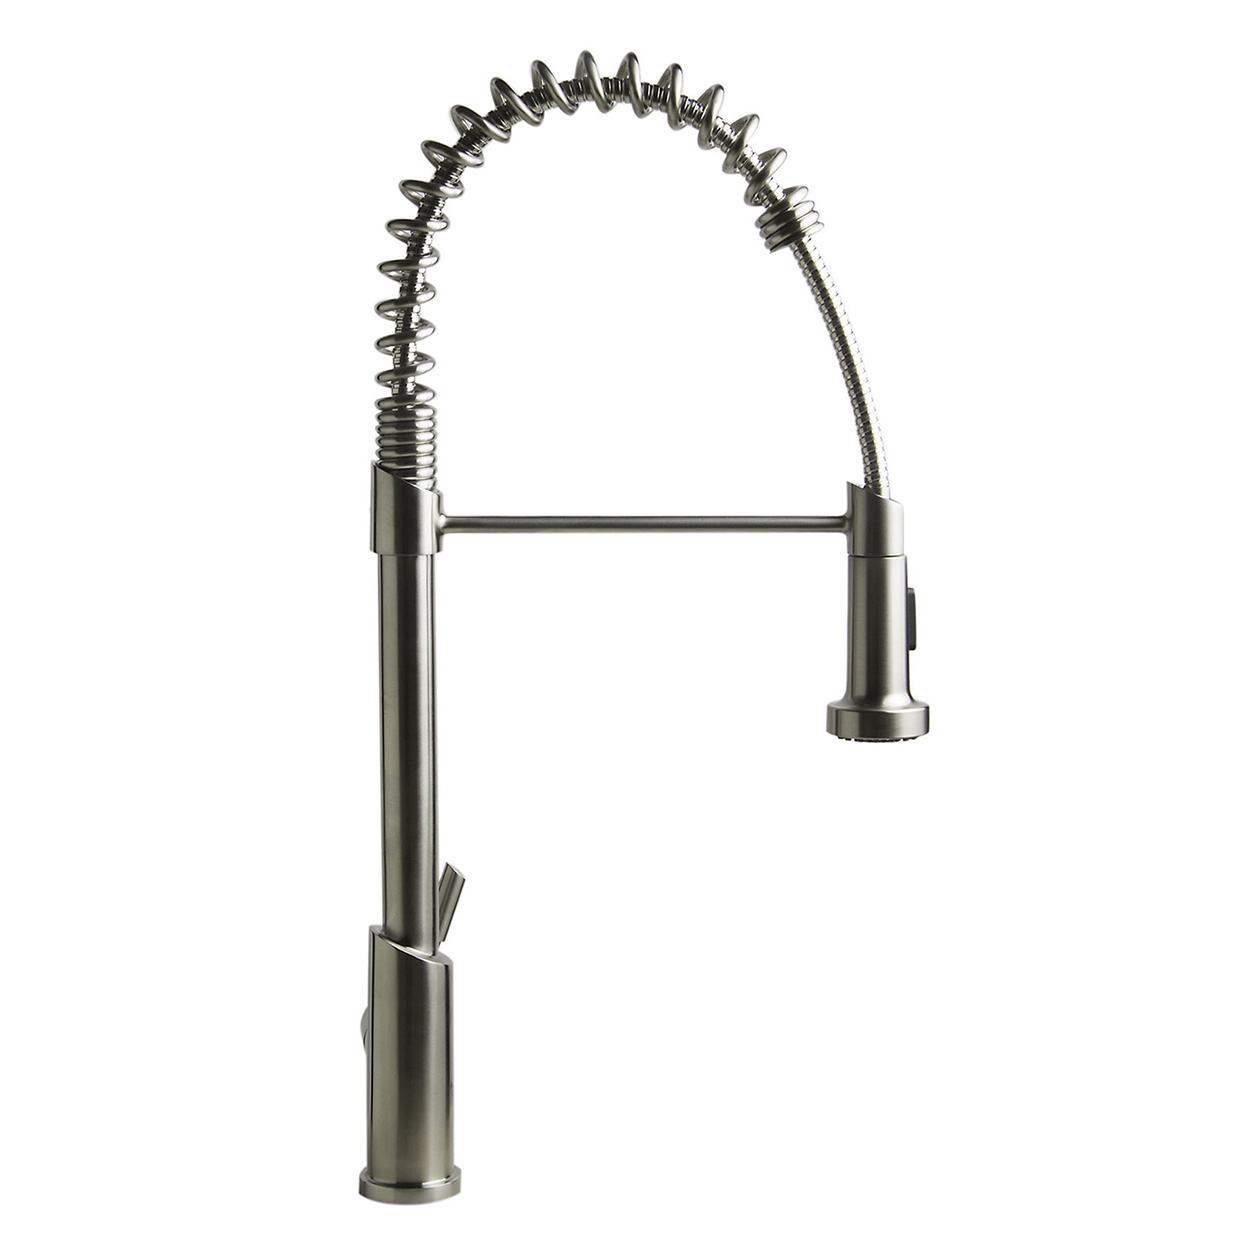 commercial pull down kitchen faucet slate bath4all alfi brand ab2013 solid stainless steel